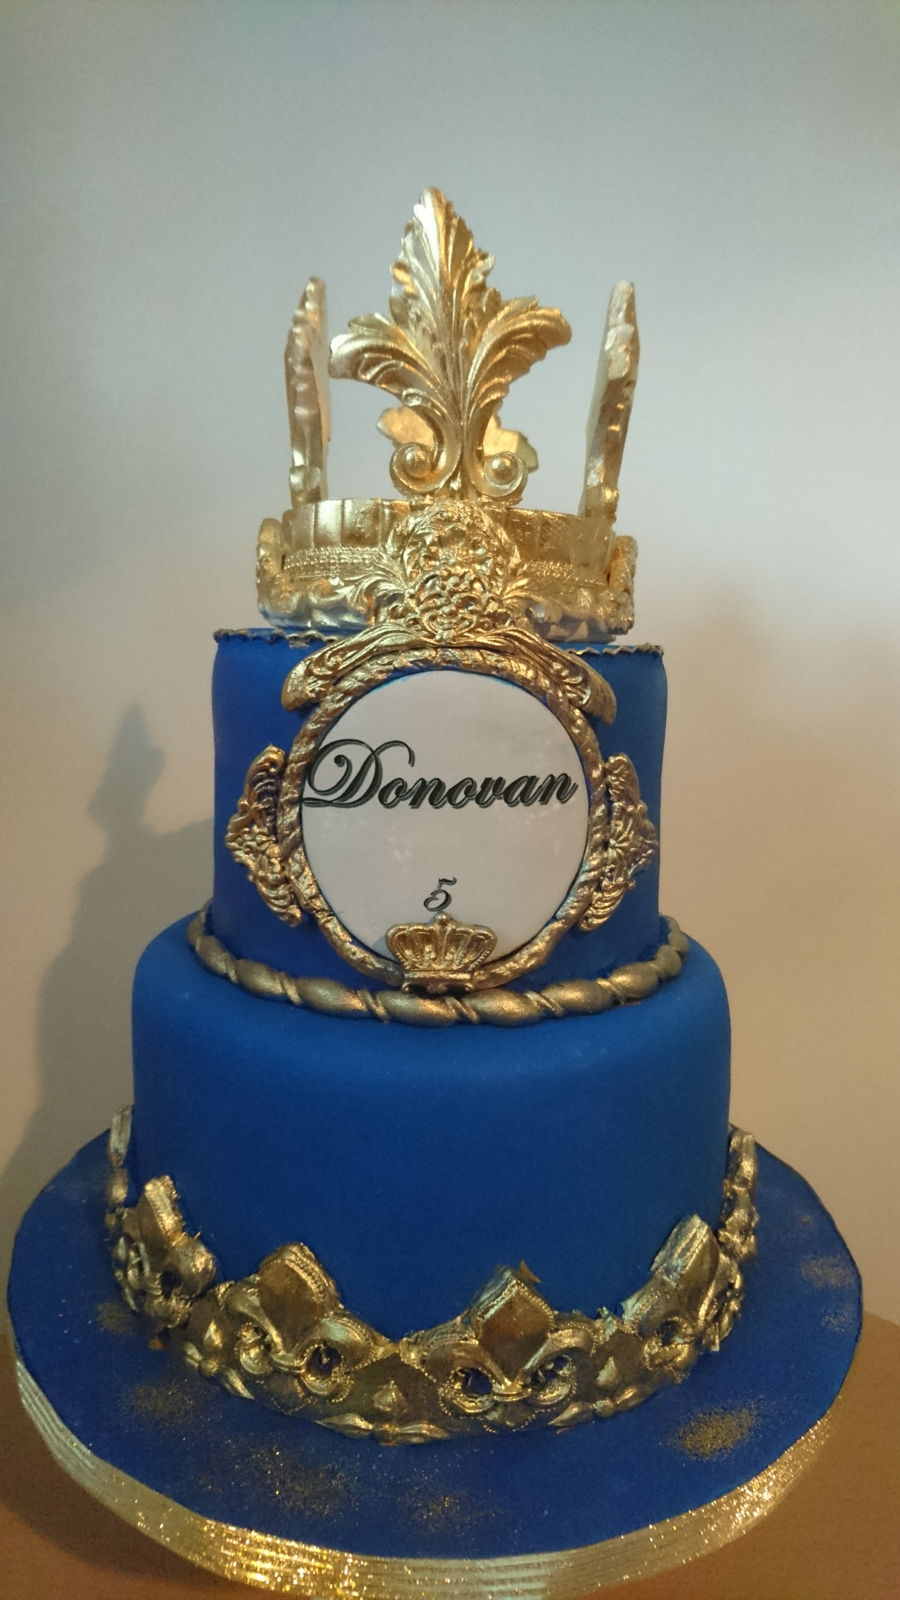 wedding cakes royal blue and gold donovan cake royal cake blue and gold cakecentral 25398